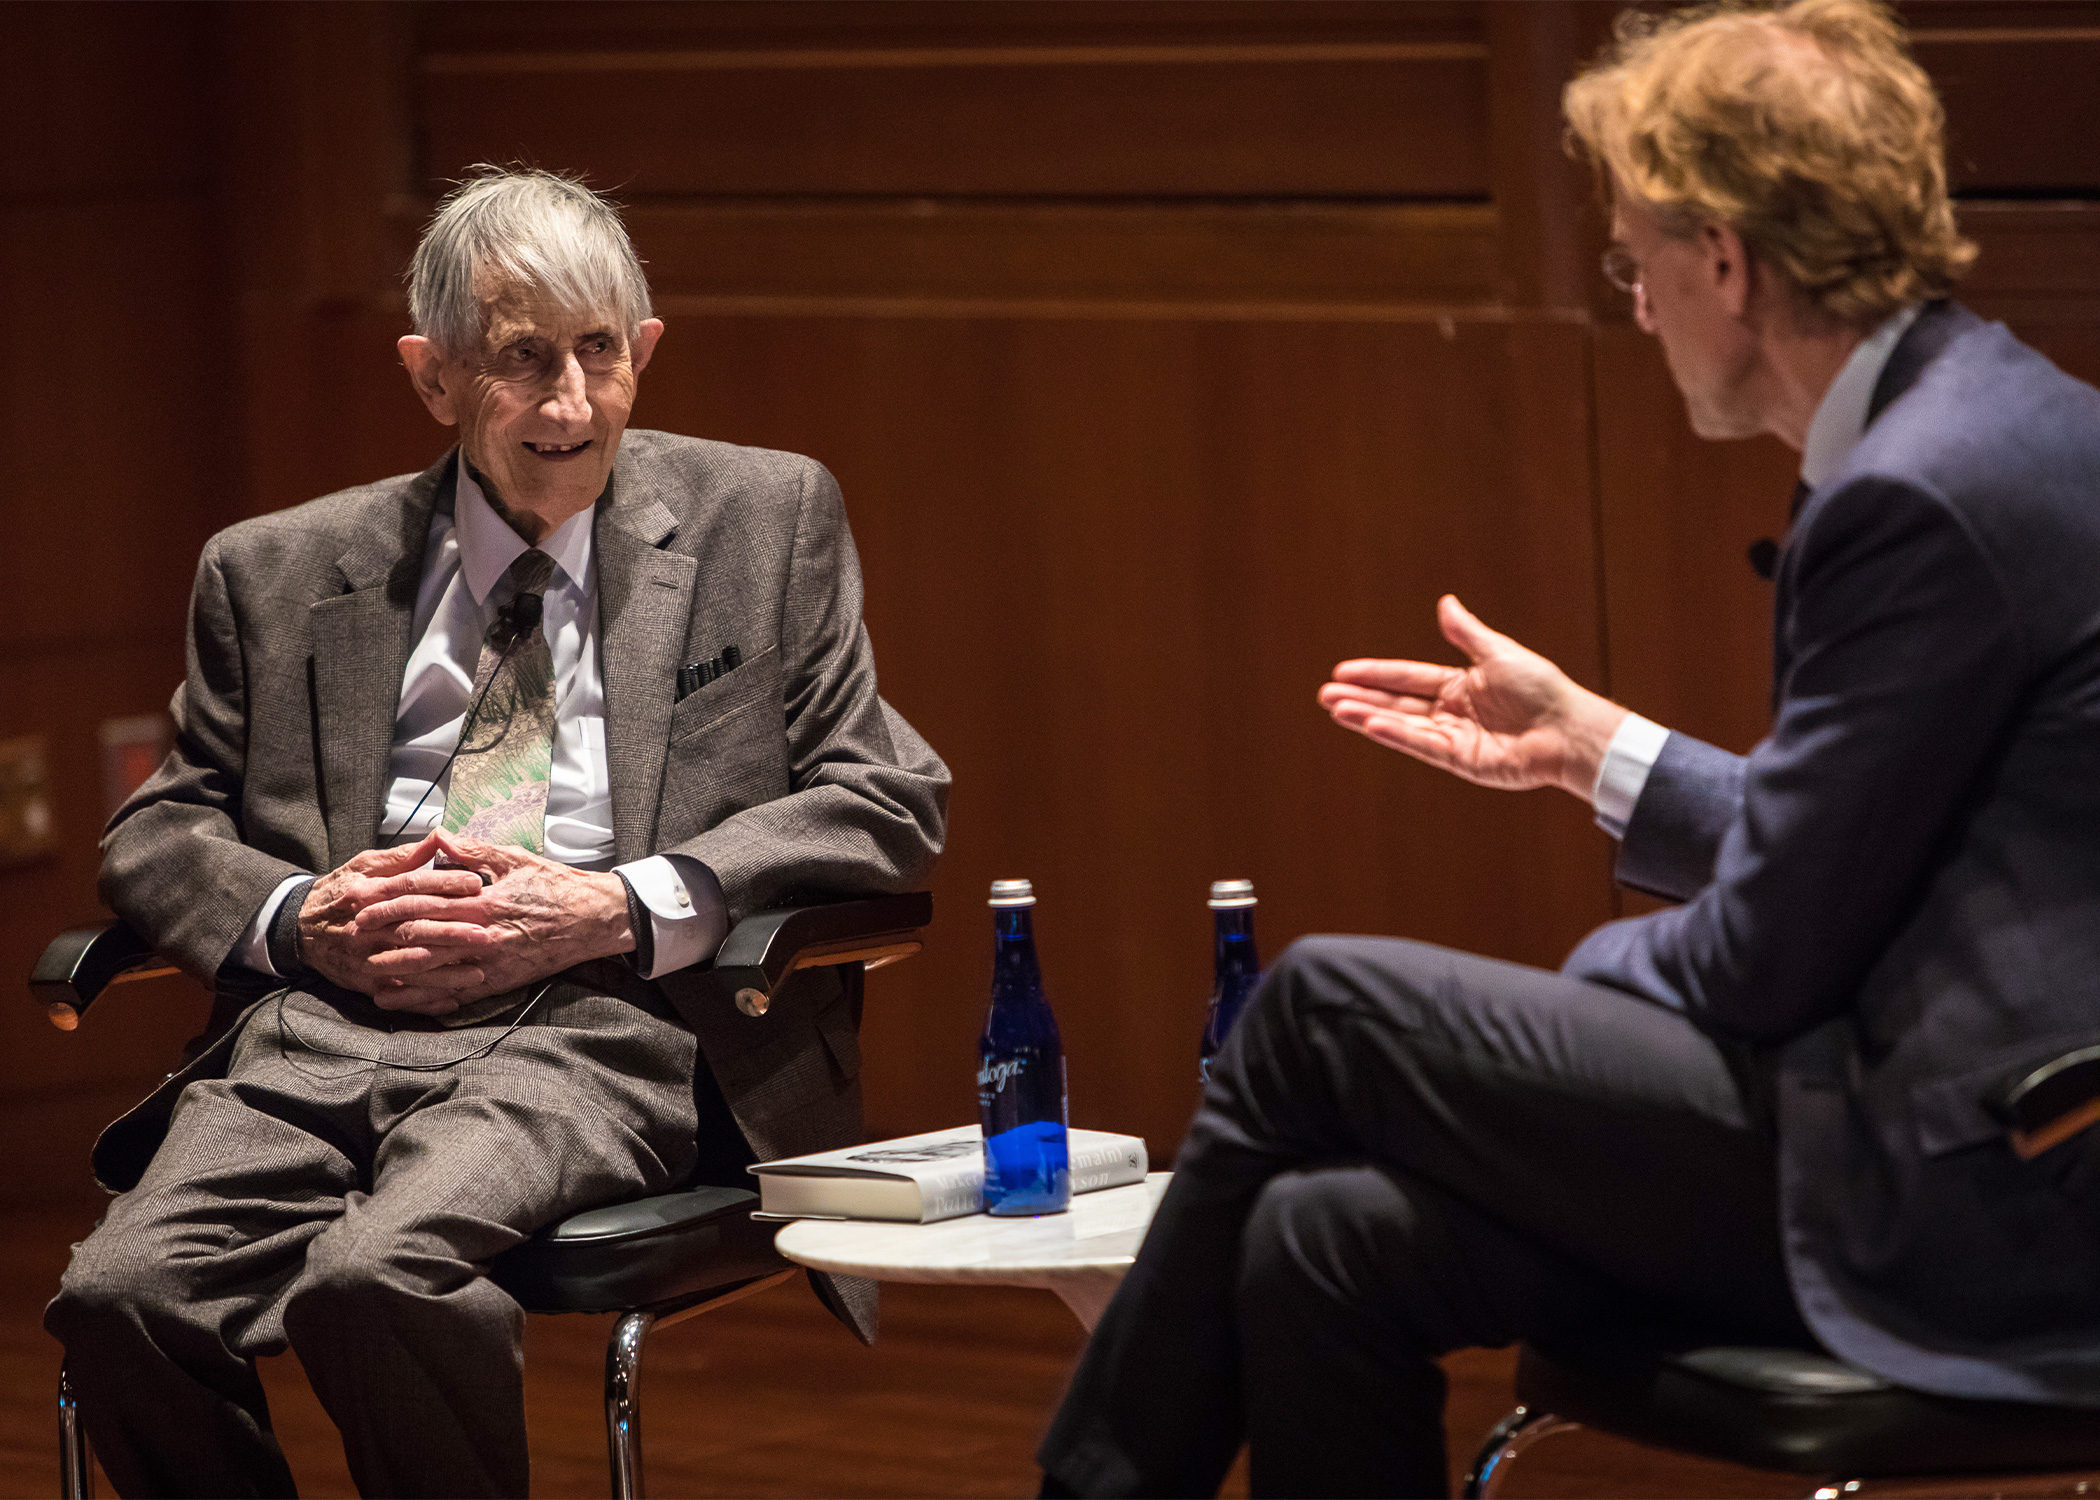 Photo of Freeman Dyson and Robbert Dijkgraaf talking on stage